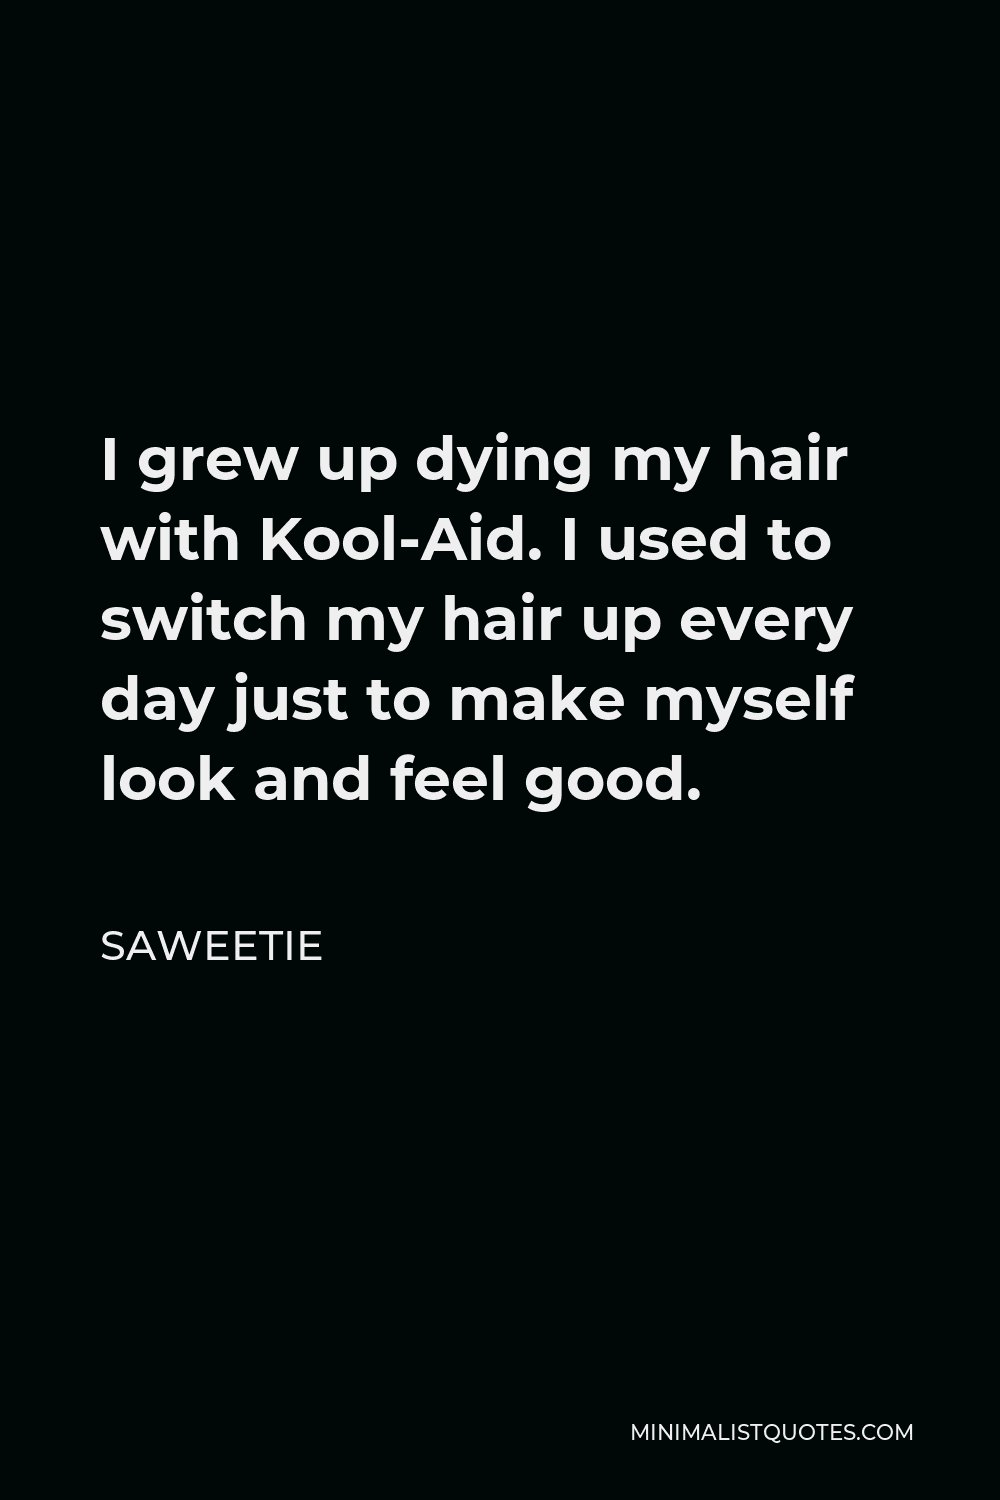 Saweetie Quote - I grew up dying my hair with Kool-Aid. I used to switch my hair up every day just to make myself look and feel good.